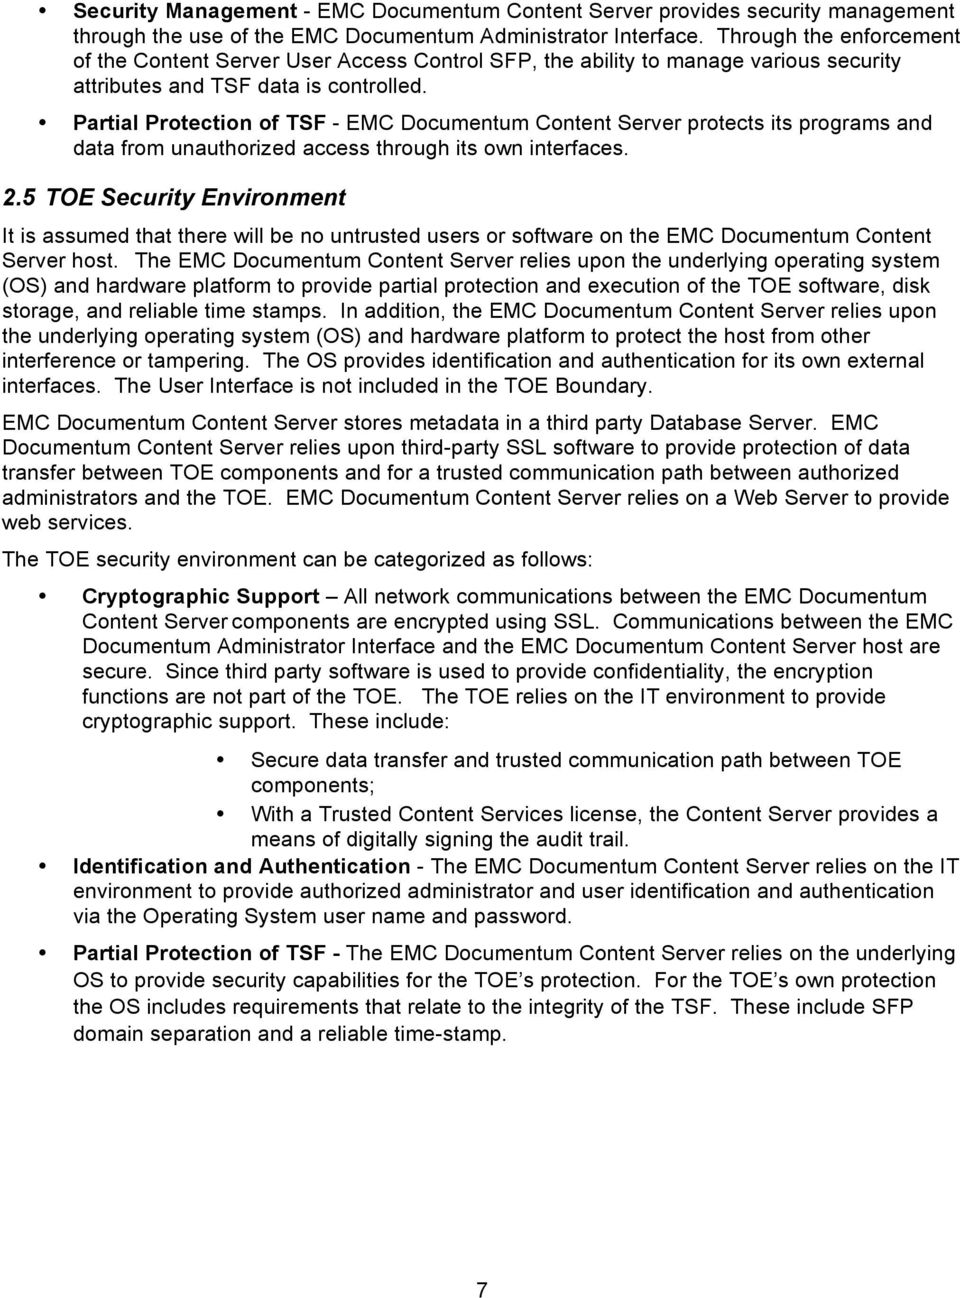 Partial Protection of TSF - EMC Documentum Content Server protects its programs and data from unauthorized access through its own interfaces. 2.